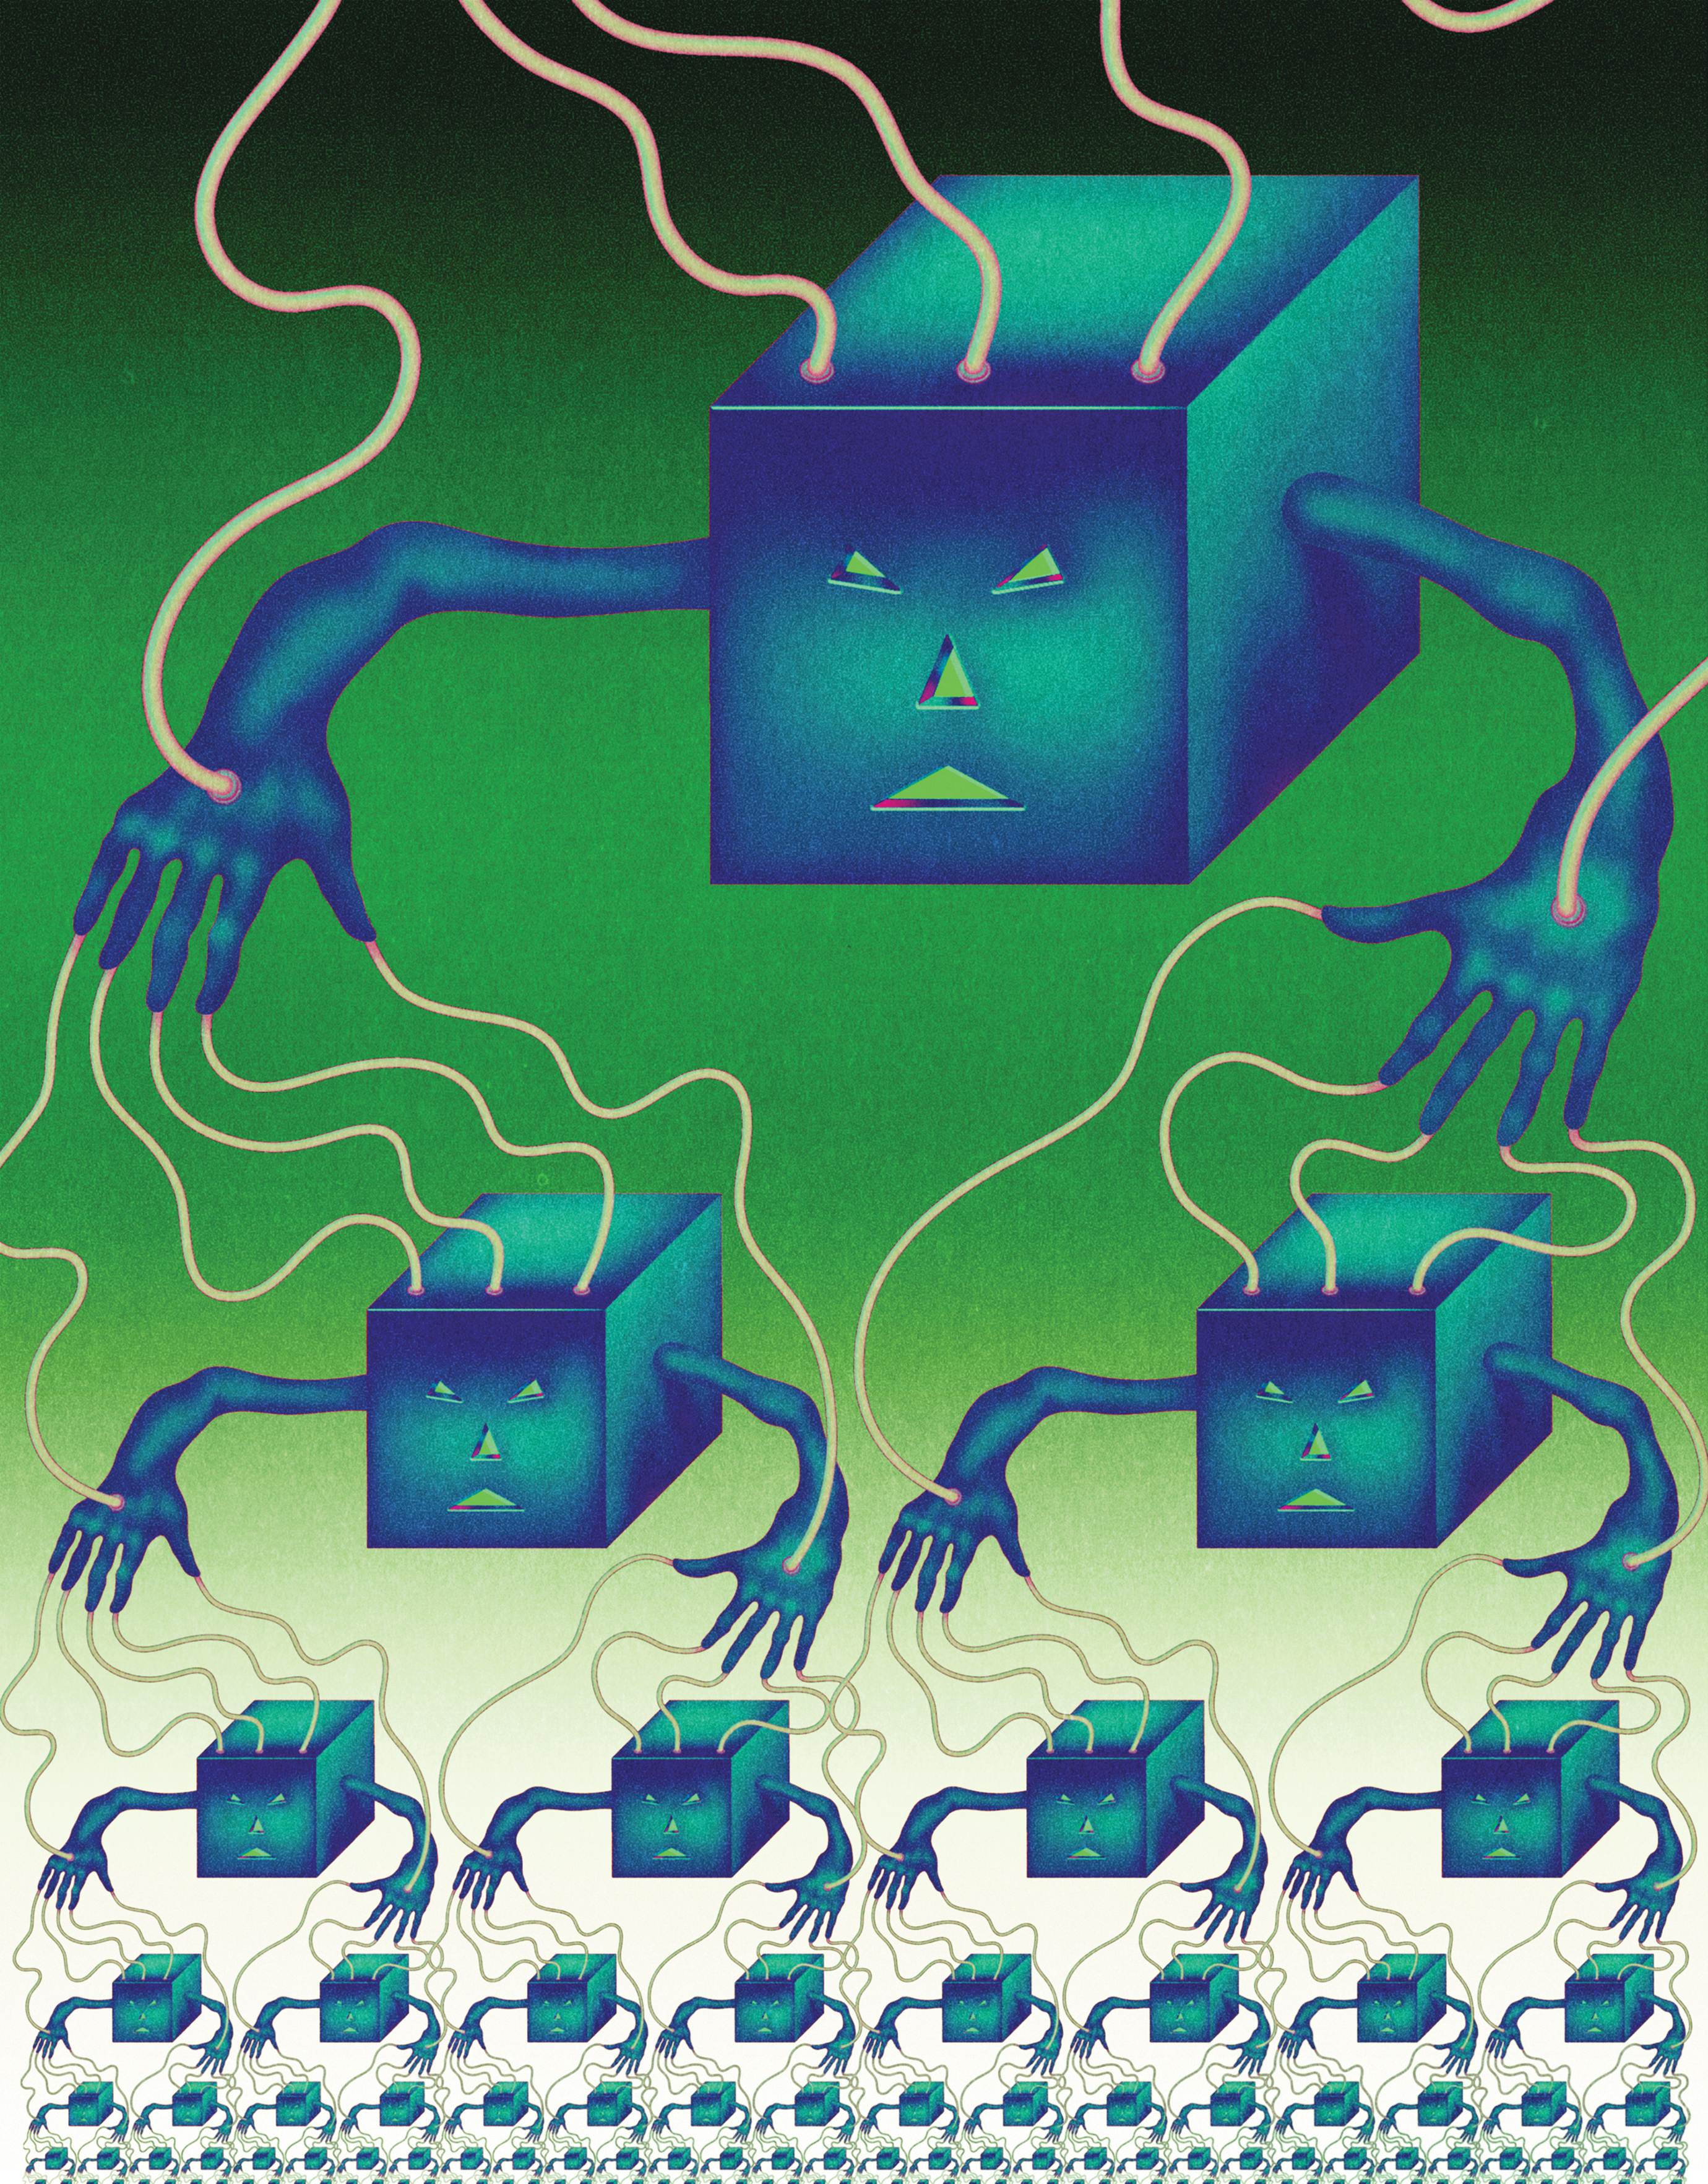 "<b><a href=""https://www.technologyreview.com/s/603500/10-breakthrough-technologies-2017-botnets-of-things/"">Botnets of Things</a></b> <br> Illustration by Robert Beatty"